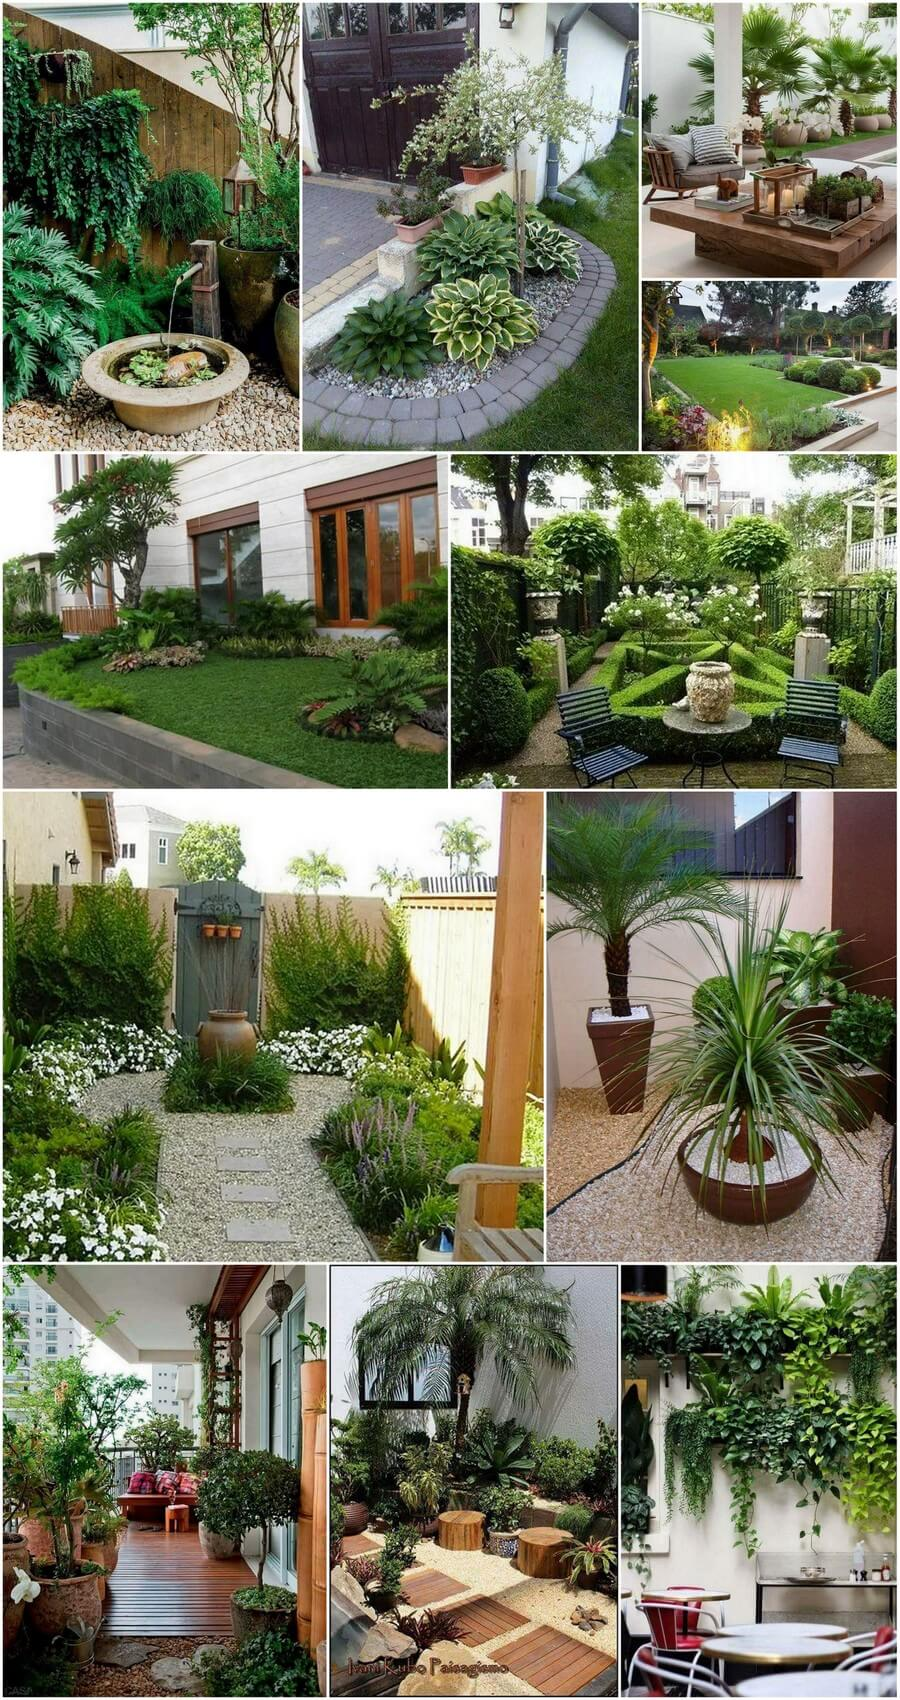 Best Home And Garden Decoration Ideas For You - 1001 Motive Ideas